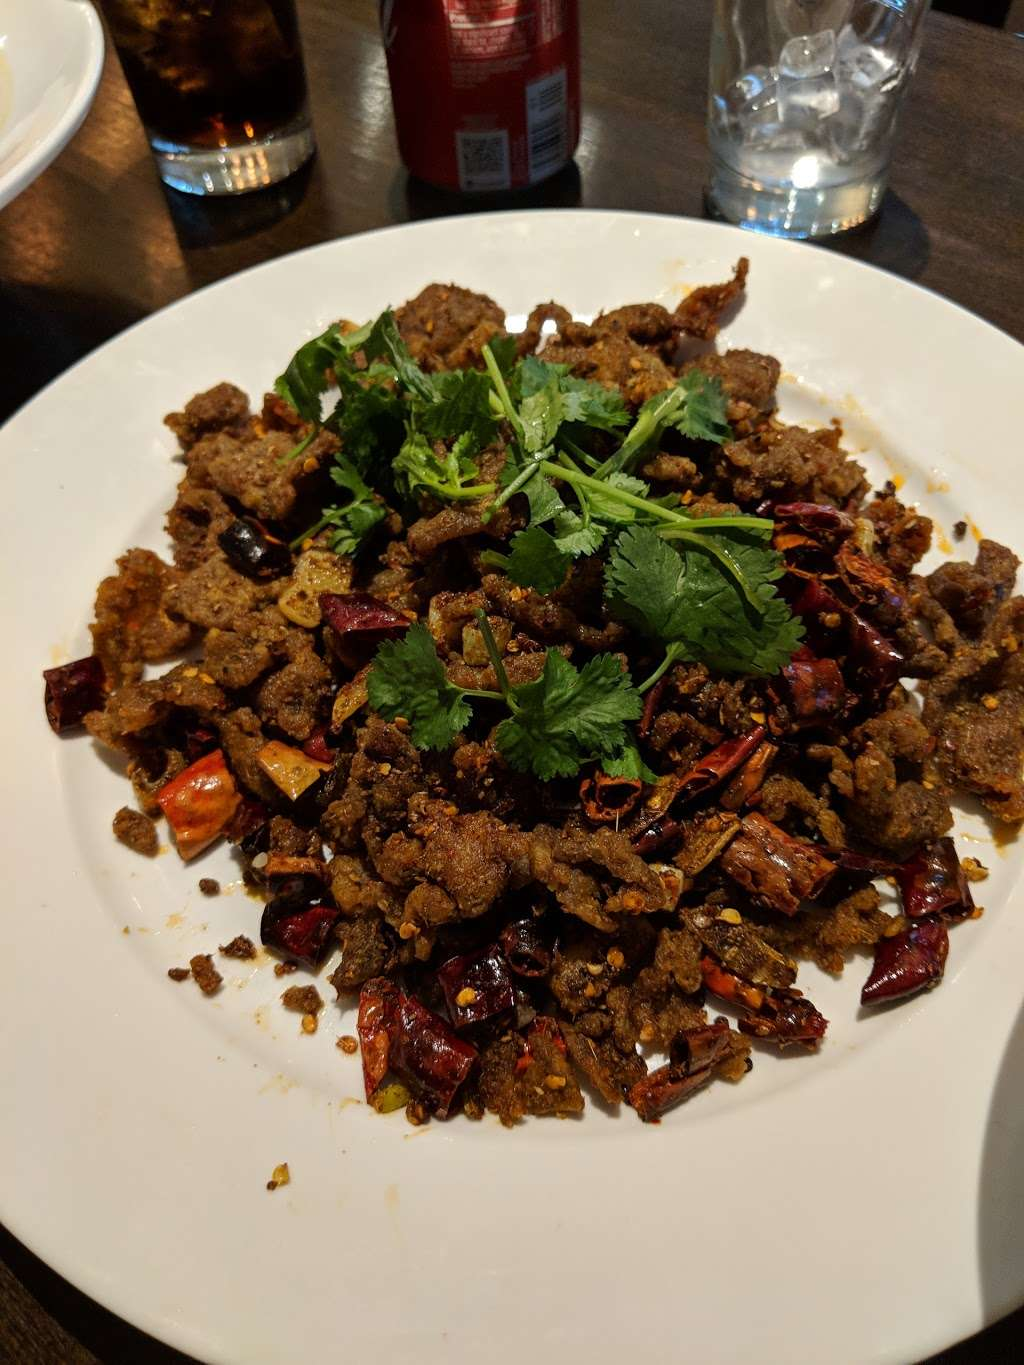 China Jade Szechuan Chili House - meal delivery    Photo 9 of 10   Address: 1643 2nd Ave, New York, NY 10028, USA   Phone: (212) 717-6688